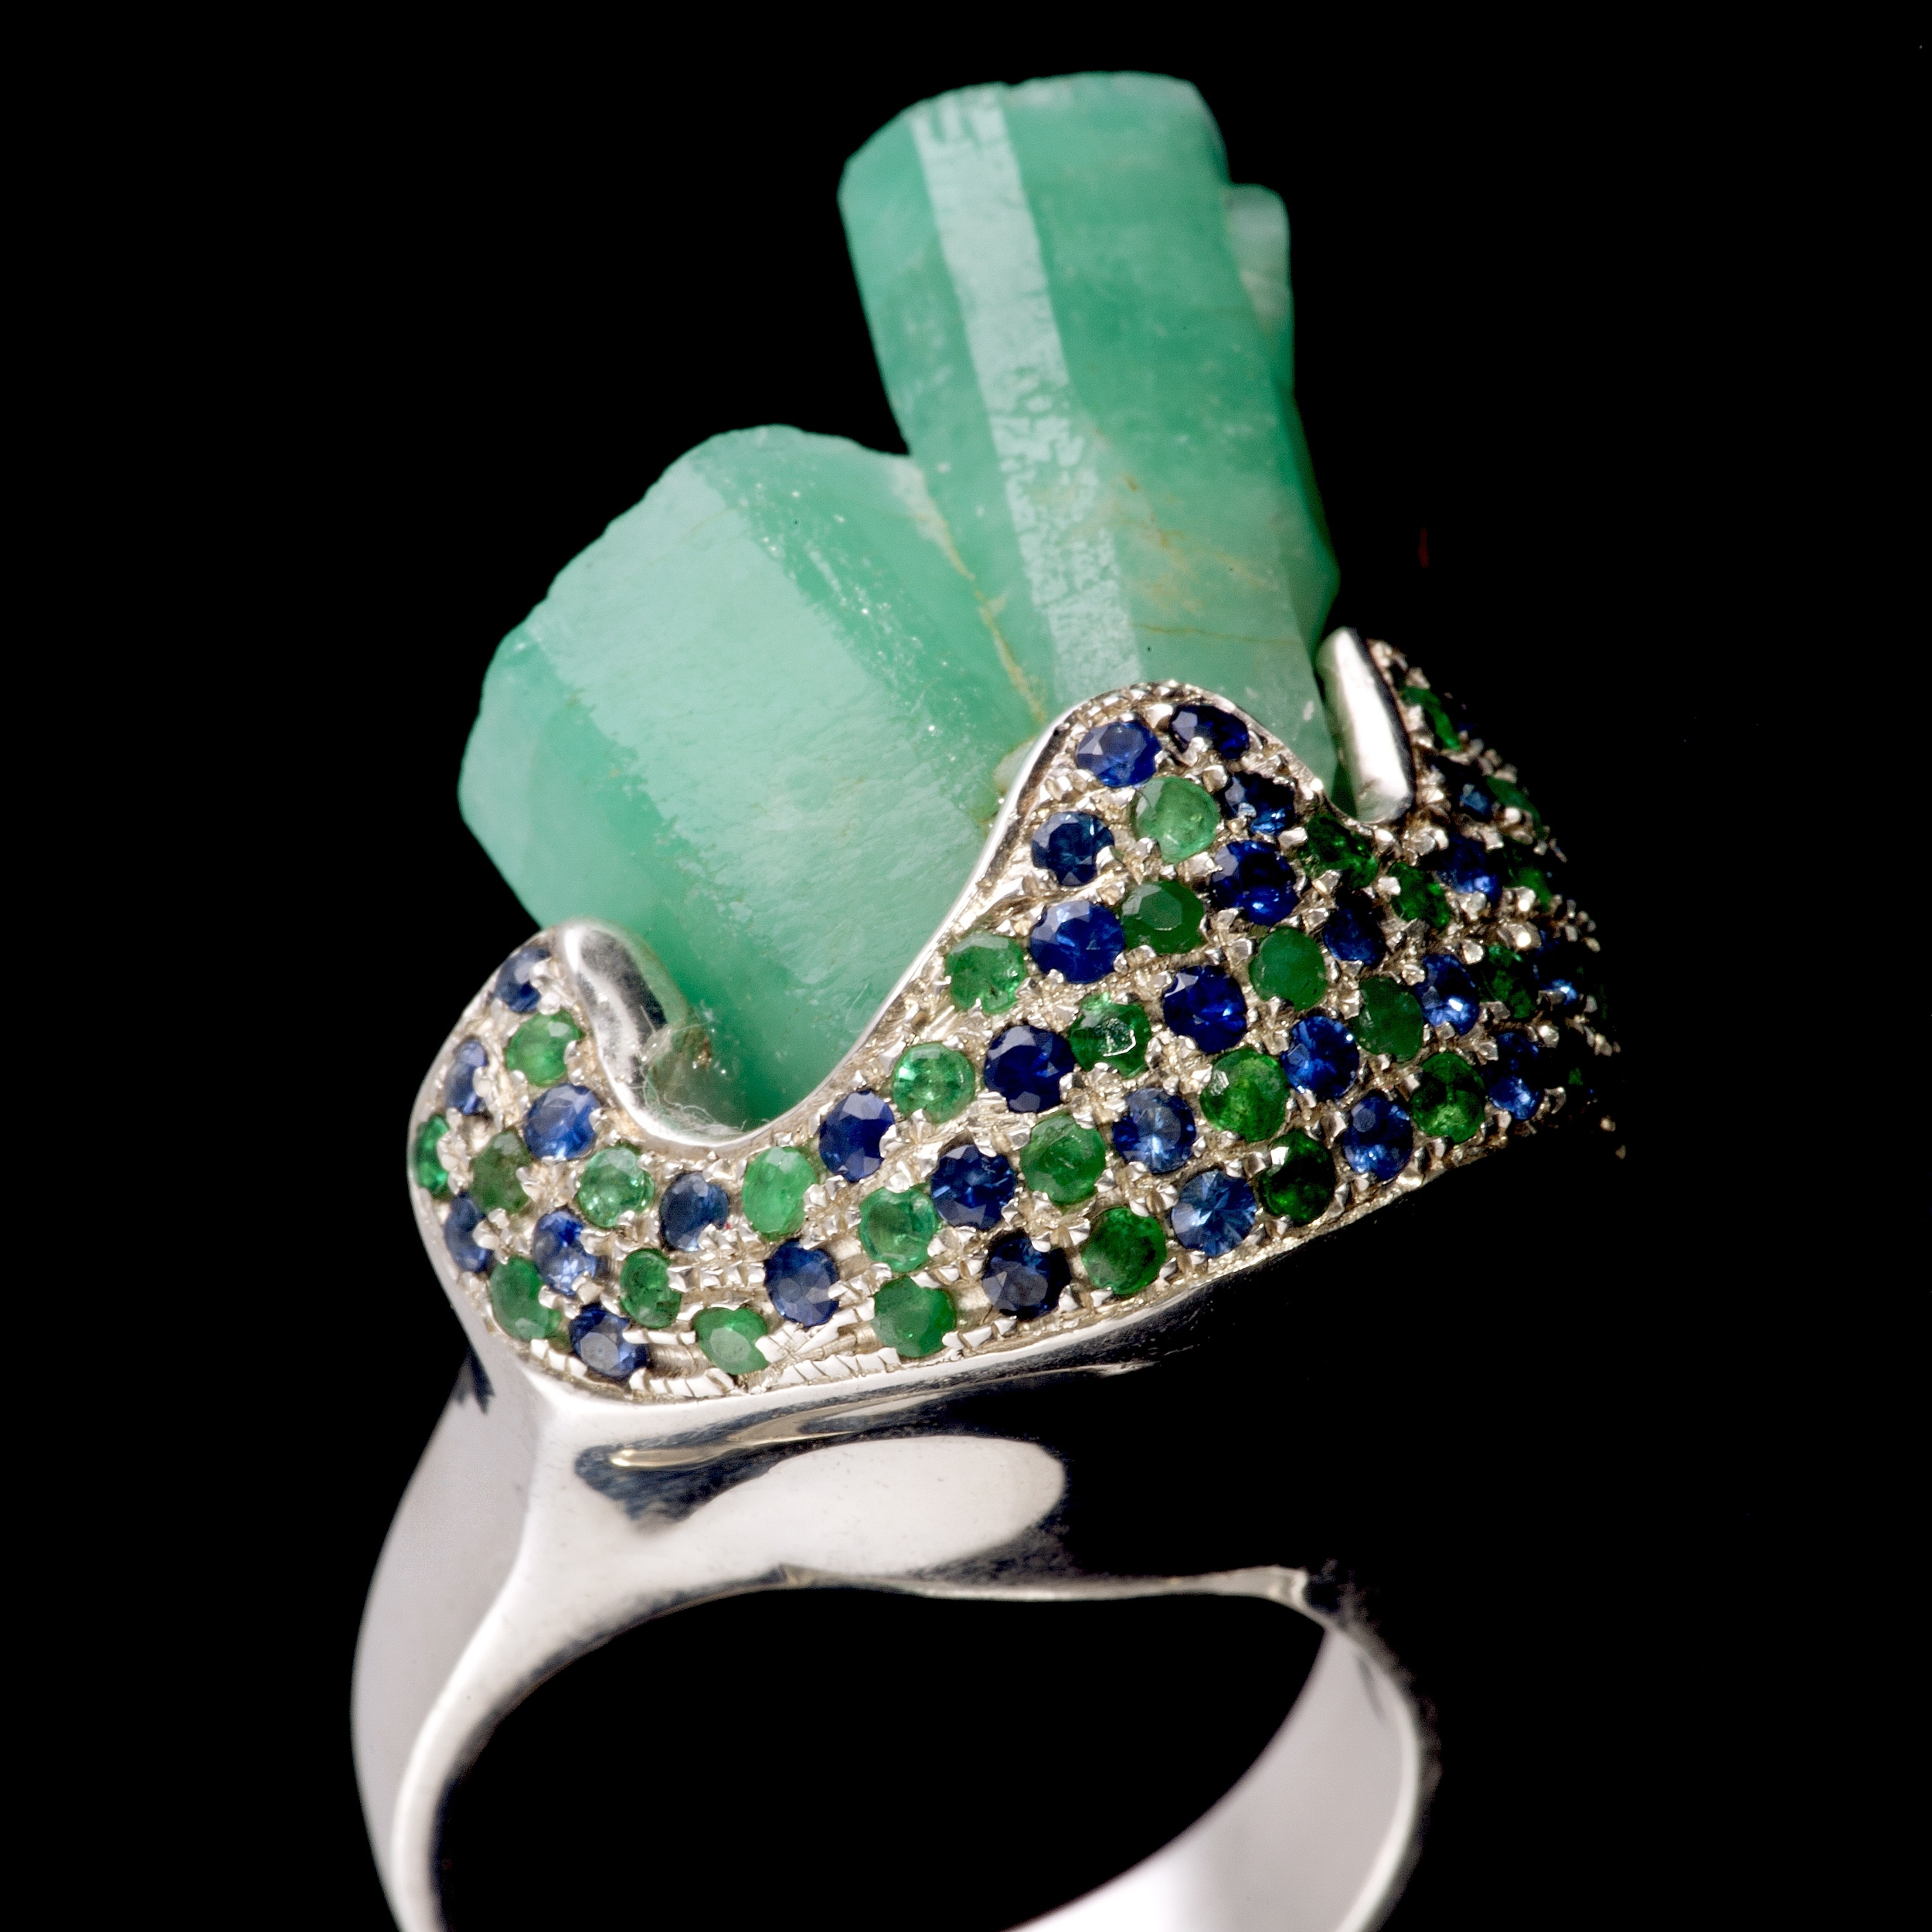 A  macle  or unique double rough emerald crystals are embraced by sapphire and emerald pavé. Ring is set in 925 silver